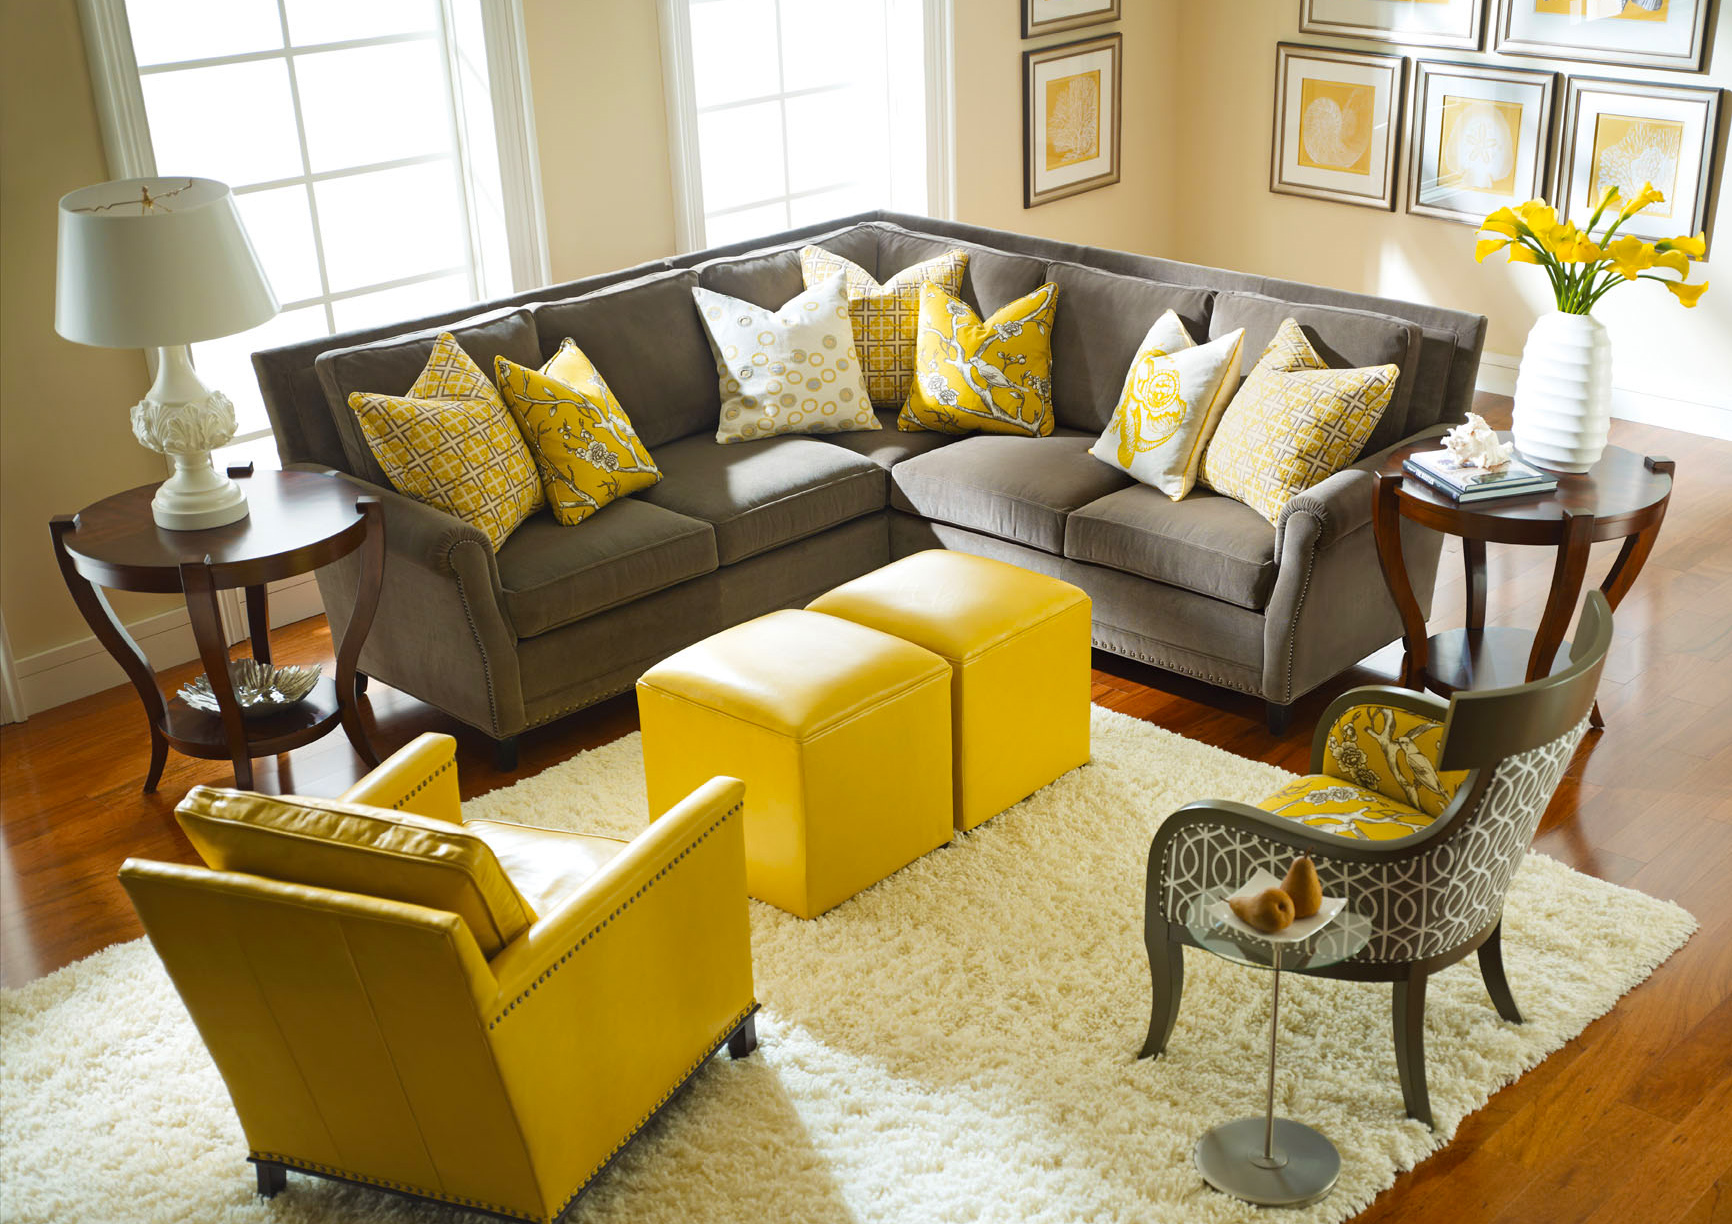 living-room-furniture-arrangement-grey-yellow-ideas-with-gray-sofaand-yellow-square-leather-ottoman-coffe-table-arm-sofa-chair_brown-living-room-rugs_living-room_ikea-living-room-lamps-ideas